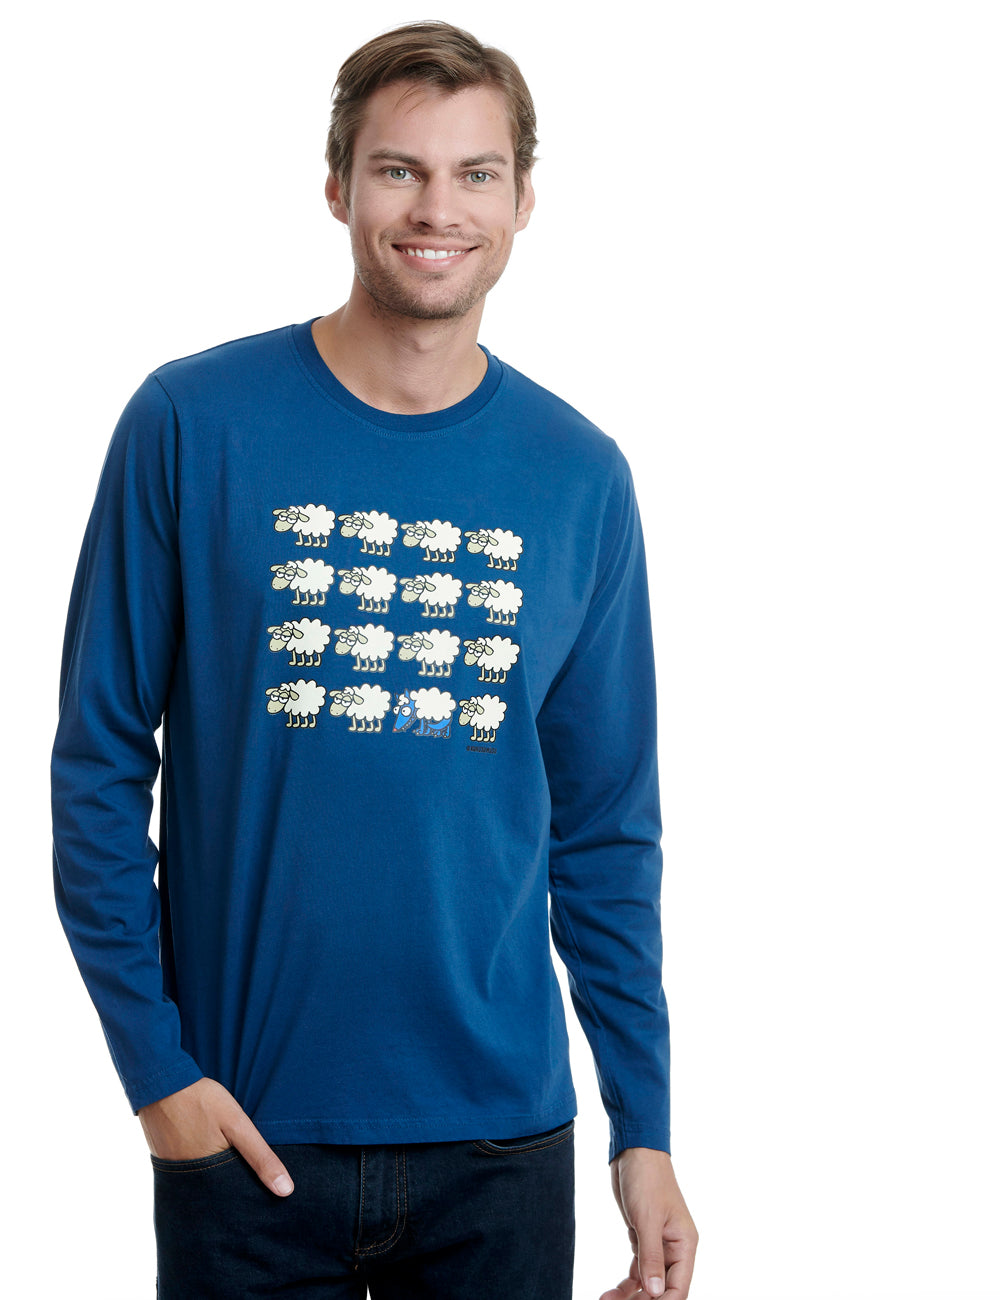 Escondido long sleeve kukuxumusu blue